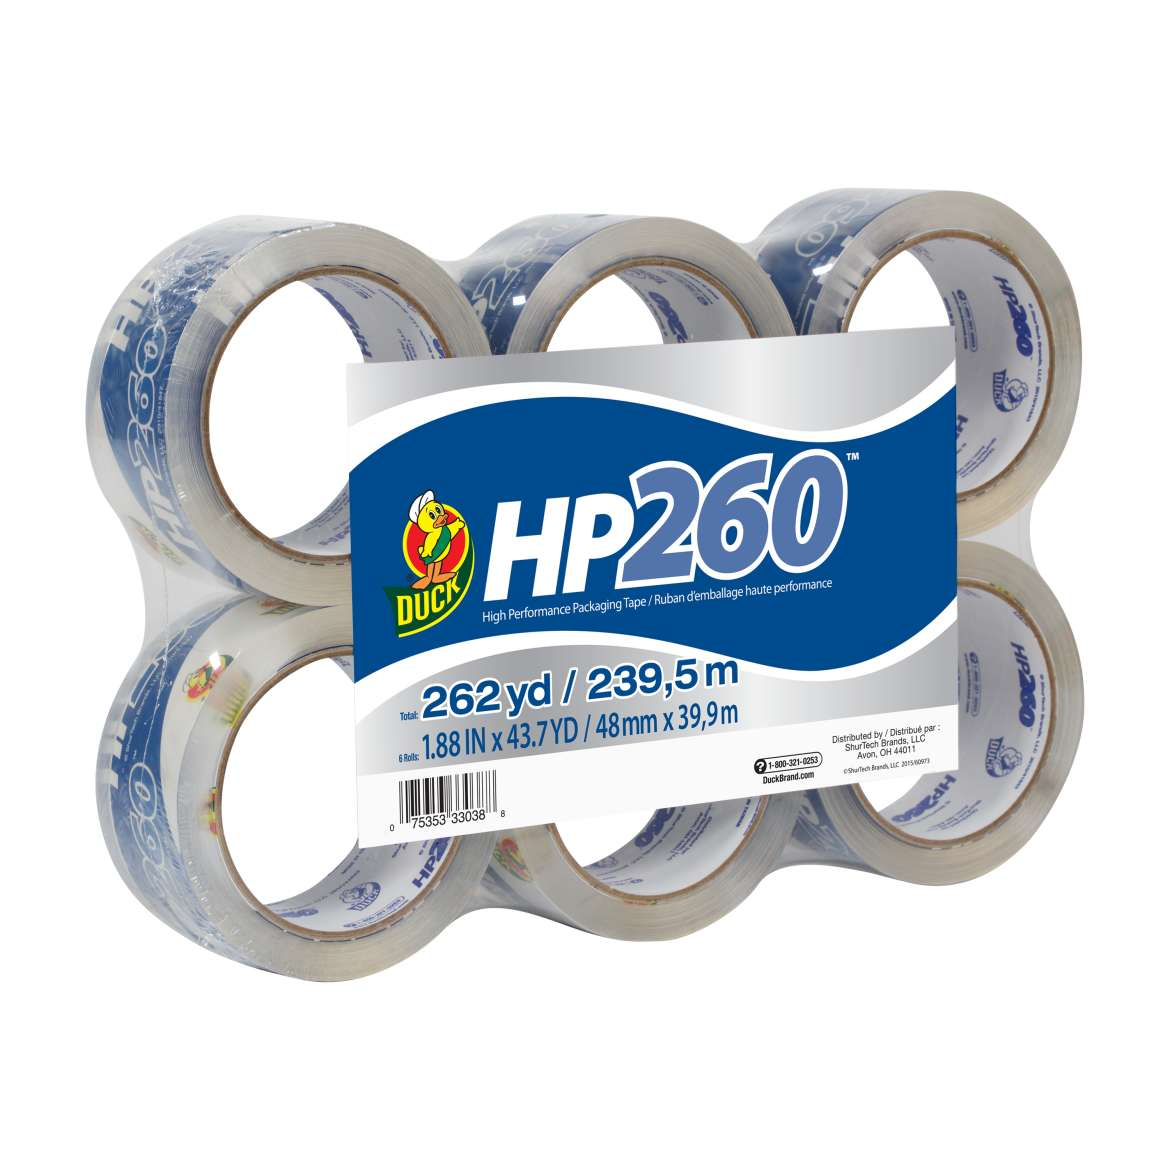 HP260™ Packaging Tape - Clear, 6 pk, 1.88 in. x 43.7 yd. Image